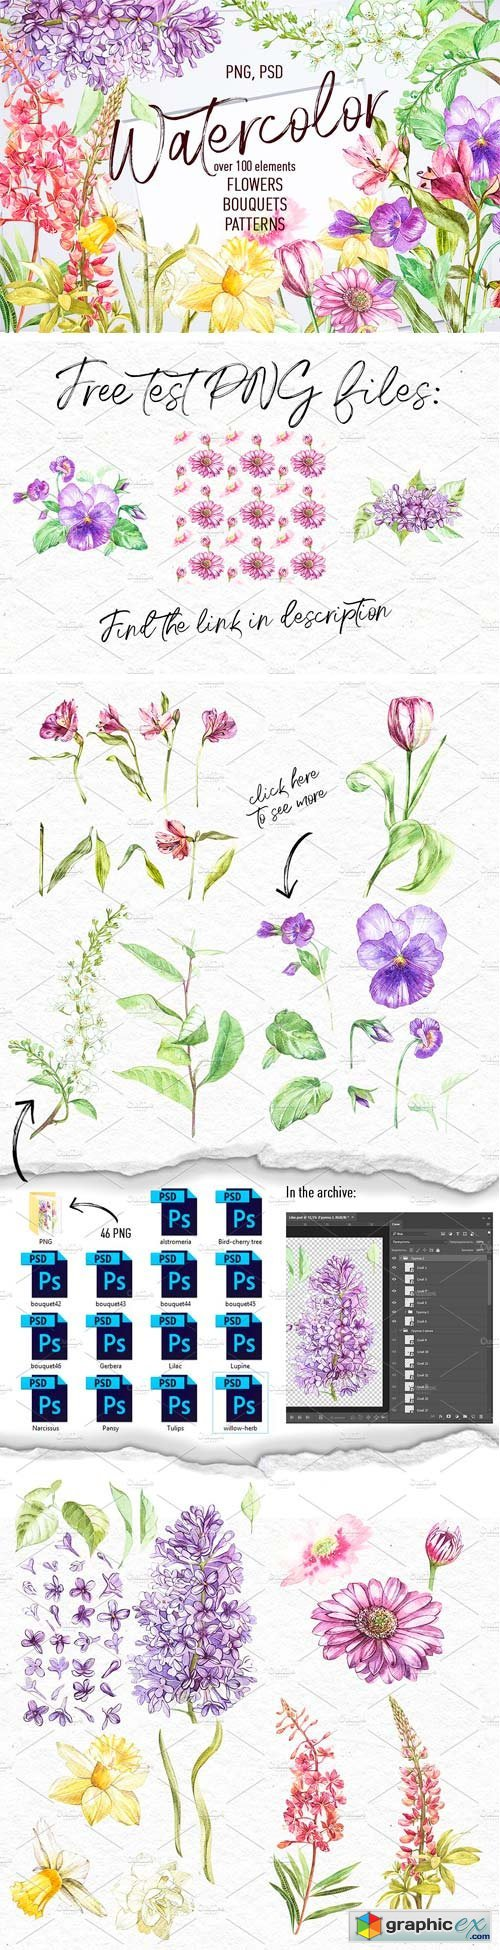 Watercolor Spring Flowers Free Download Vector Stock Image